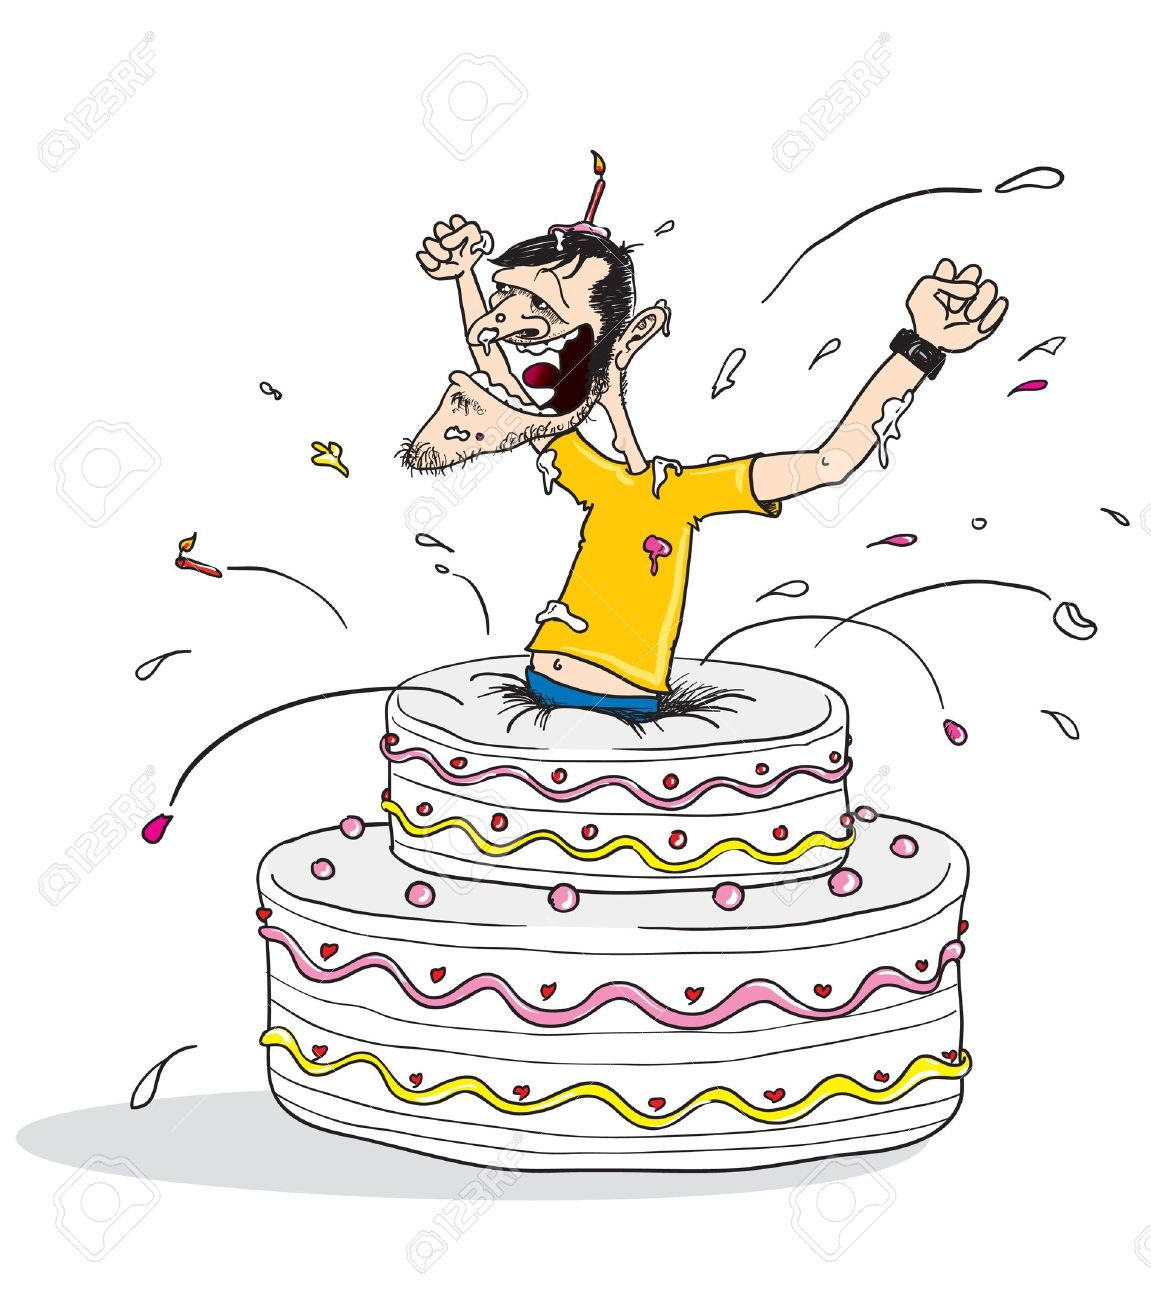 Astounding Cartoon Illustration Of A Man Jumping Out From A Birthday Cake Personalised Birthday Cards Veneteletsinfo